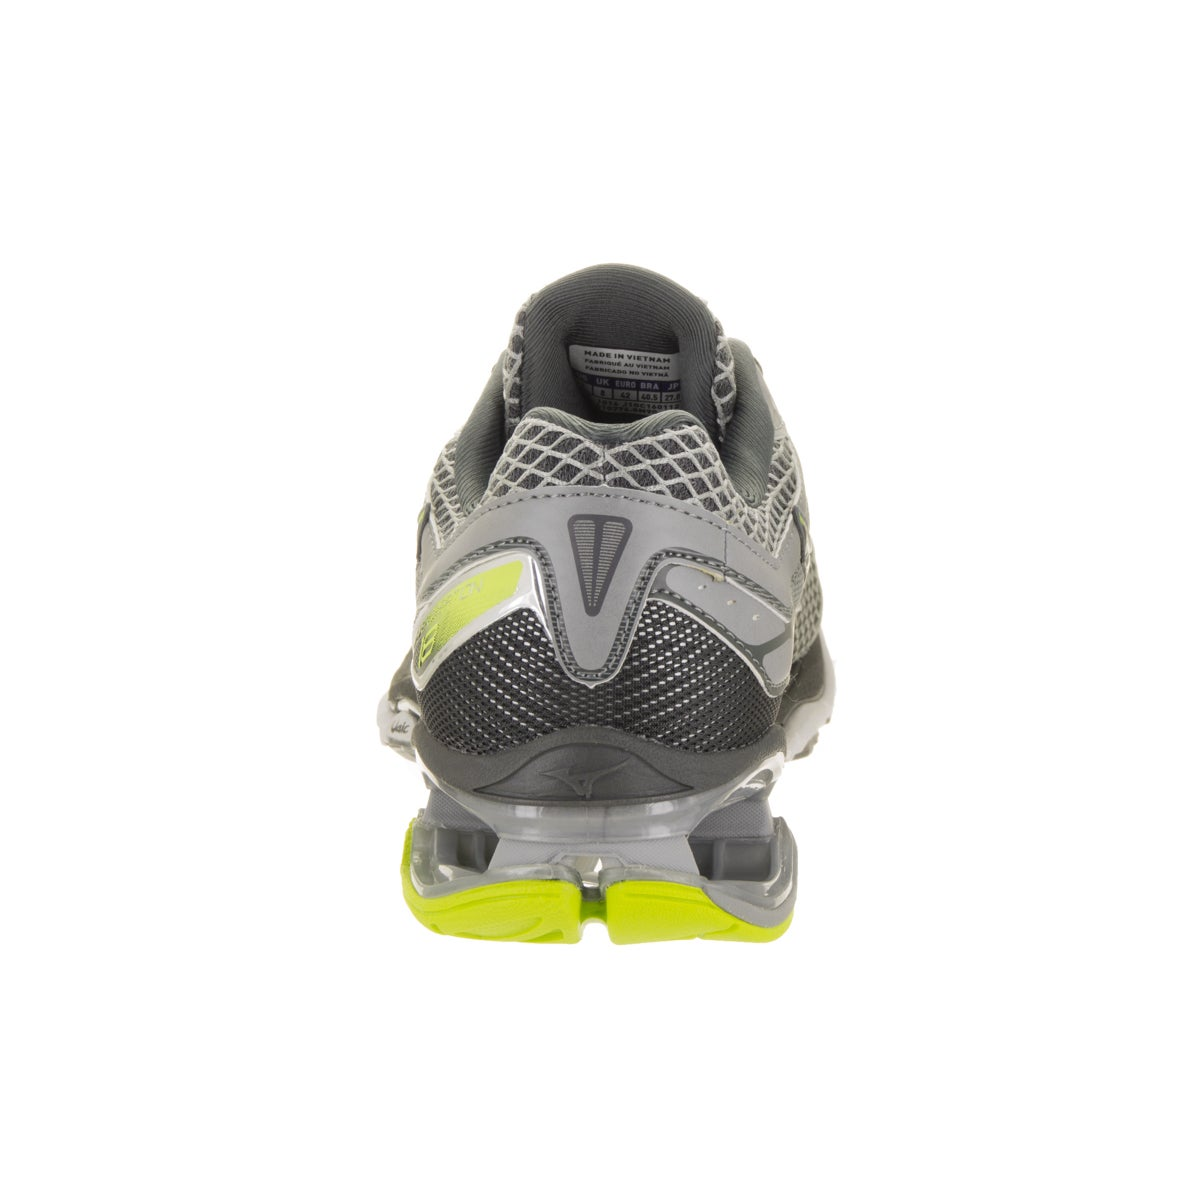 0a0d7e8dd738 Shop Mizuno Men's Wave Creation 18 Running Shoe - Free Shipping Today -  Overstock - 15858355